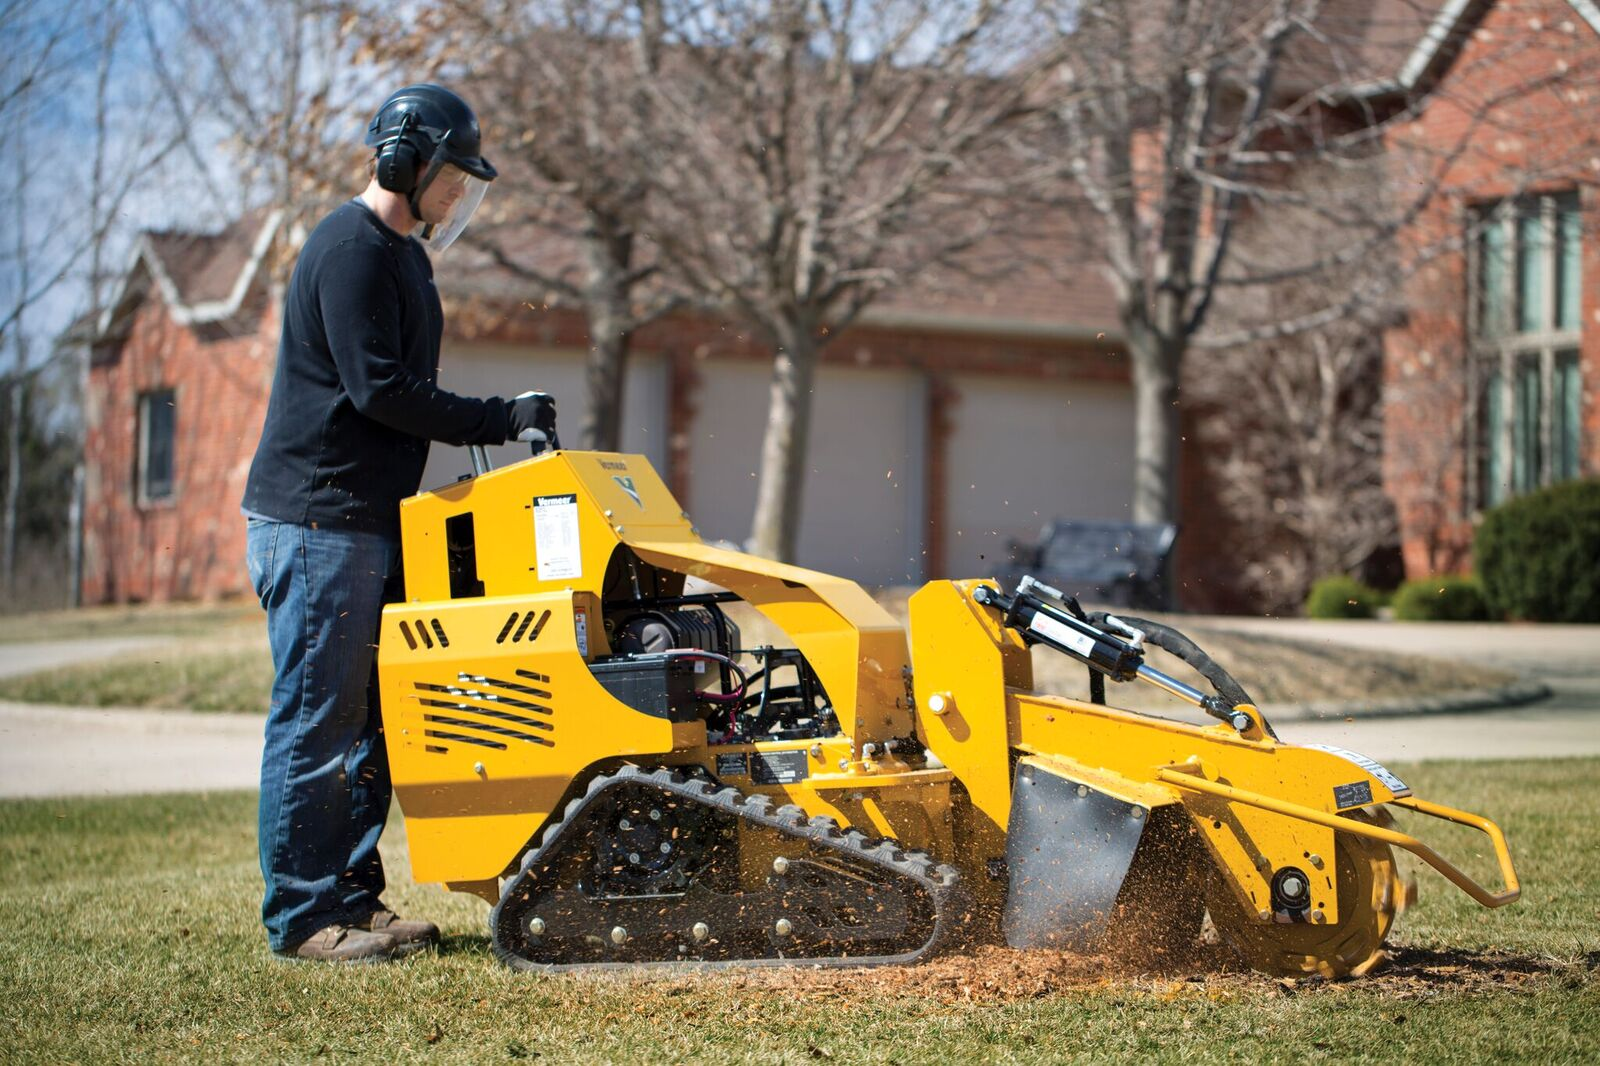 Byron-Dayton Tree Trimming and Stump Grinding Services-We Offer Tree Trimming Services, Tree Removal, Tree Pruning, Tree Cutting, Residential and Commercial Tree Trimming Services, Storm Damage, Emergency Tree Removal, Land Clearing, Tree Companies, Tree Care Service, Stump Grinding, and we're the Best Tree Trimming Company Near You Guaranteed!